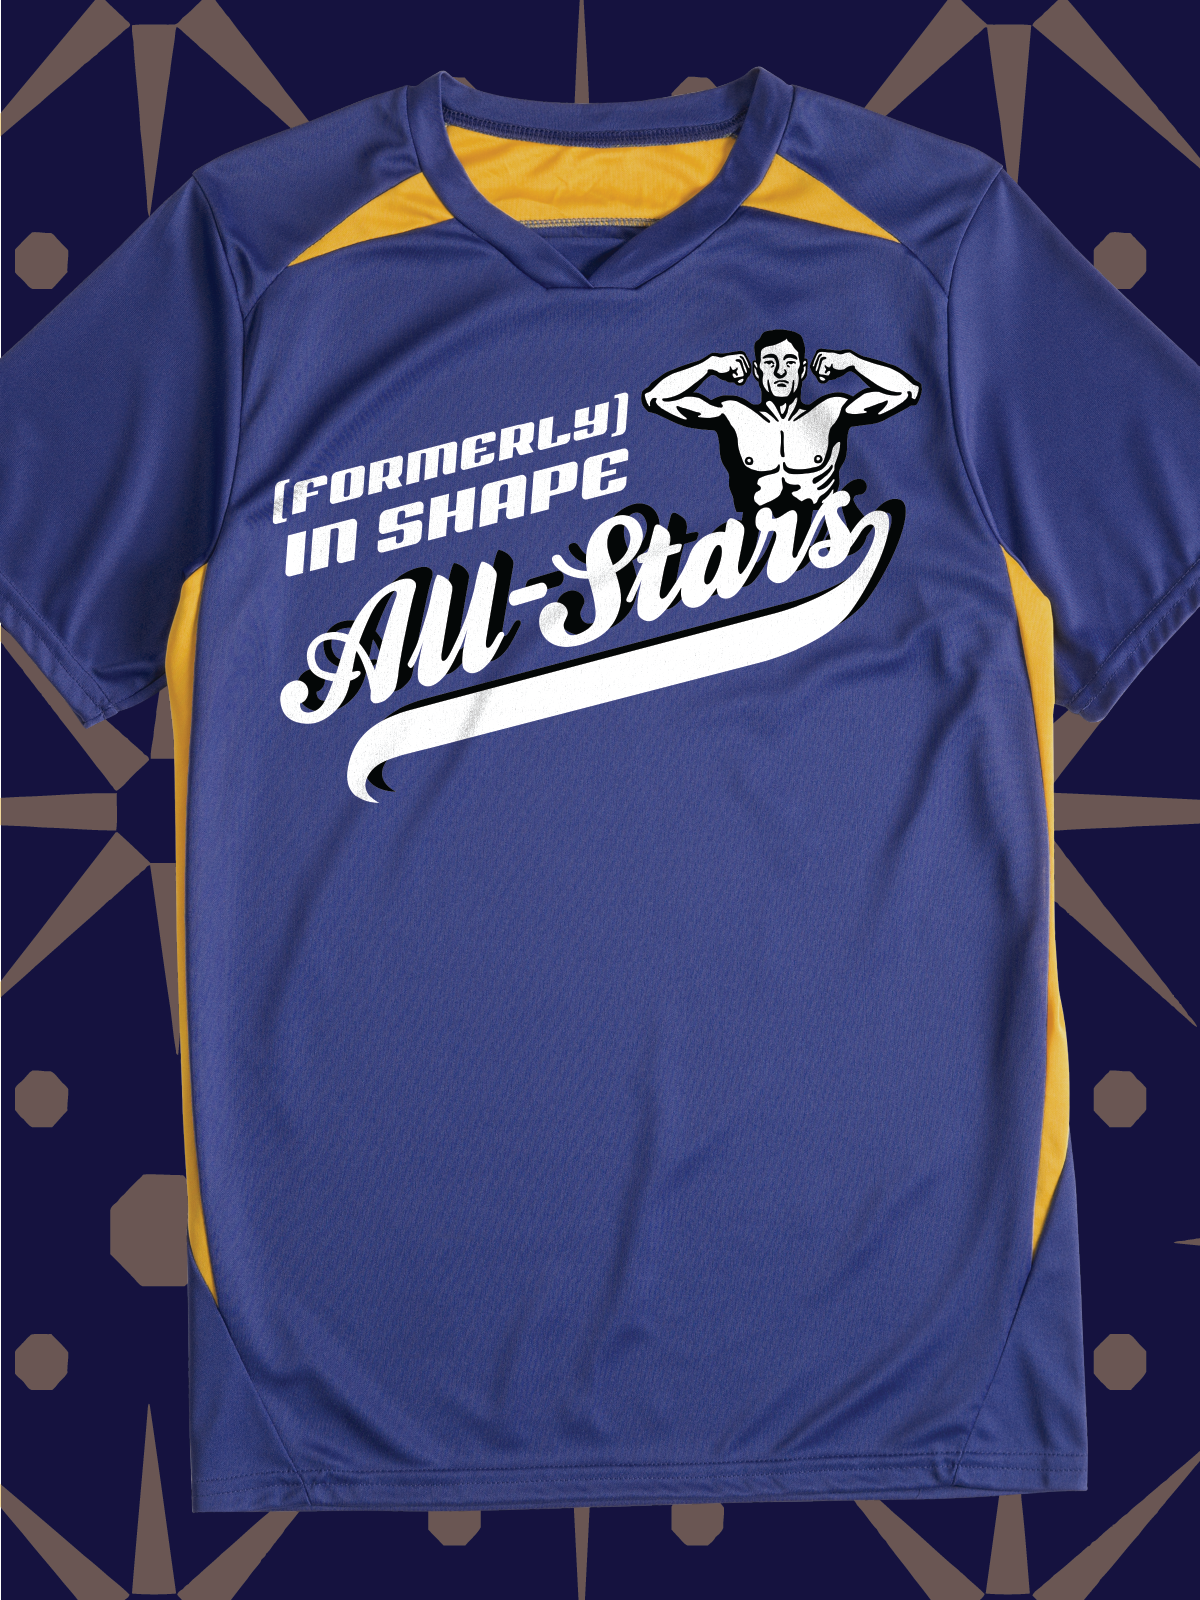 Formerly In Shape All Stars Funny Design Idea For Sports Team League Shirts Jerseys Hoodies Bags Water Bottles Team T Shirts Shirt Designs Tshirt Designs